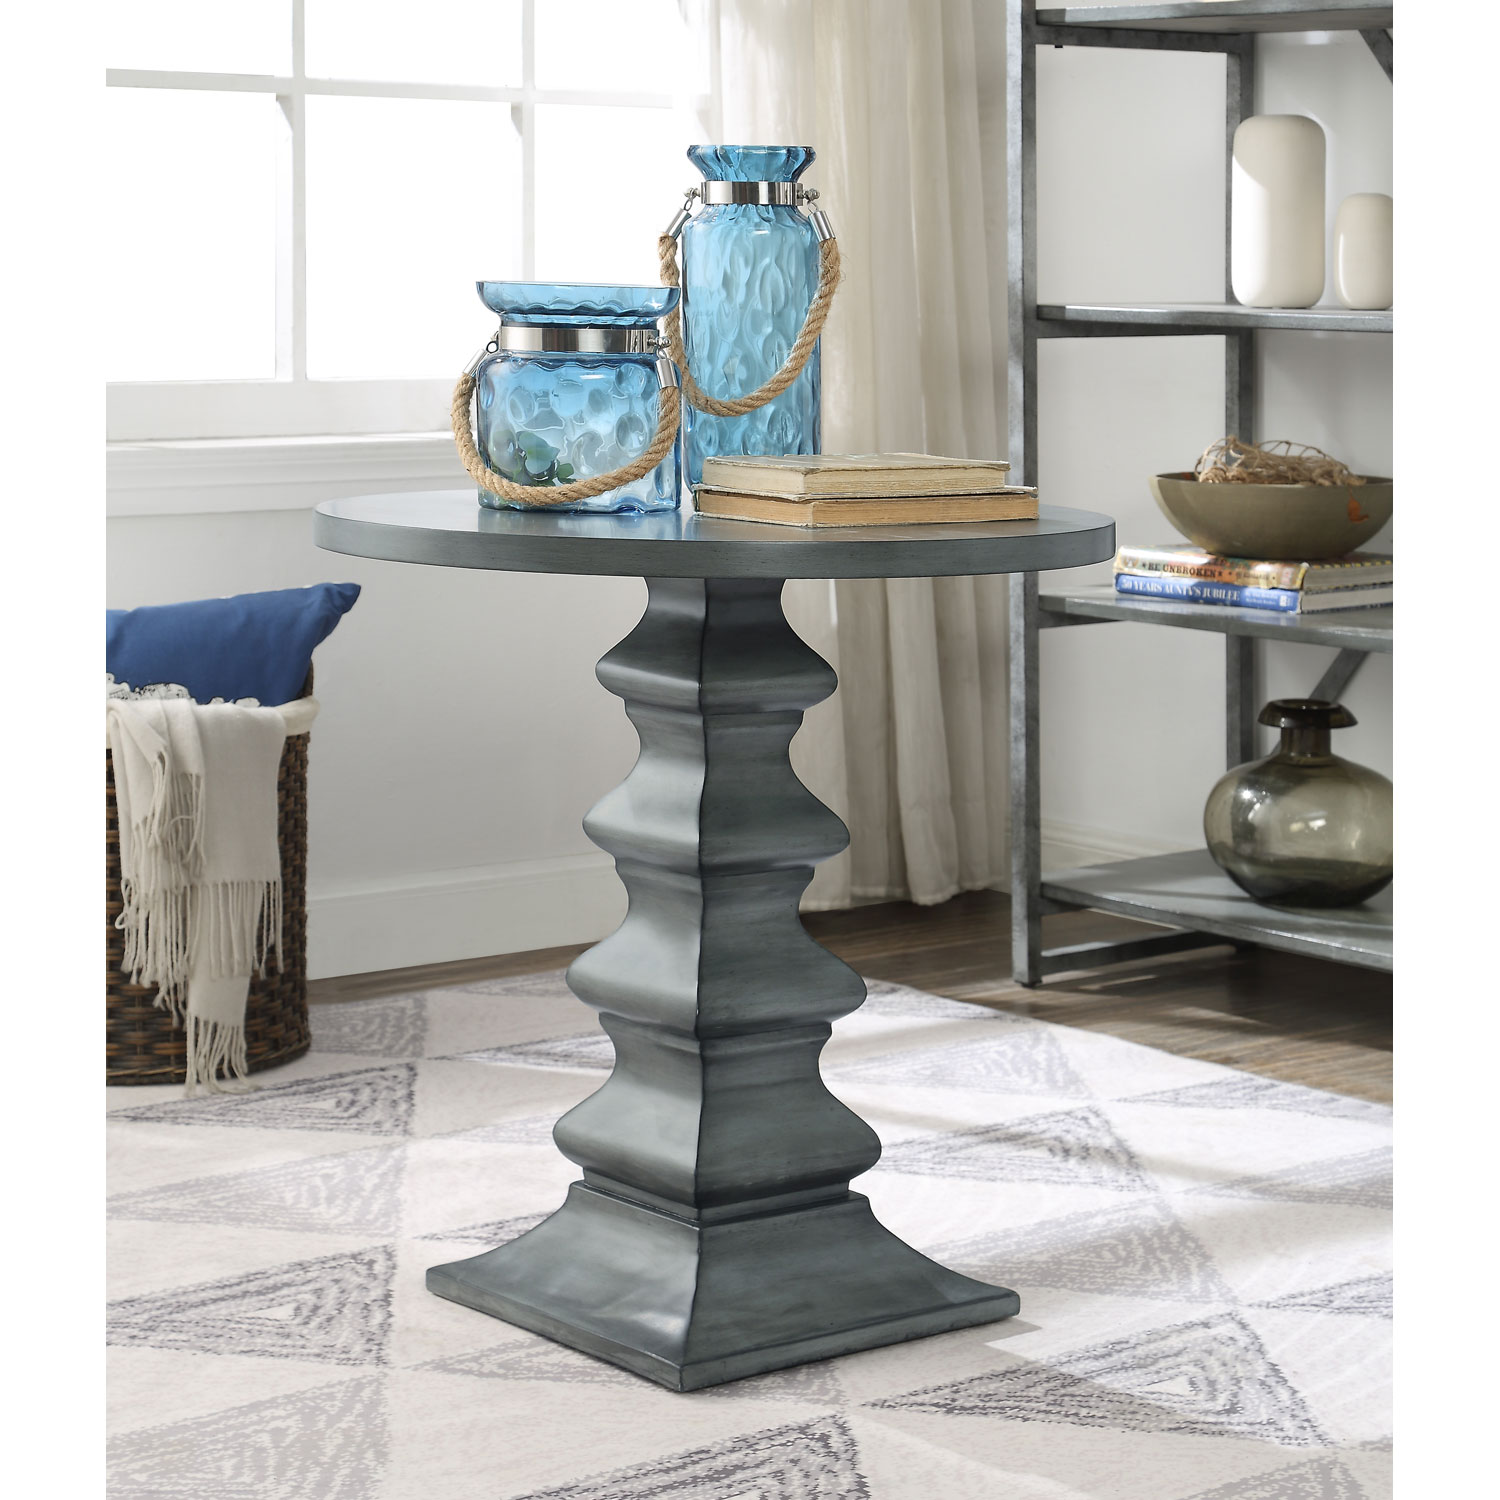 coast imports round accent table gray bellacor hover zoom foyer cabinet furniture kohls gift registry wedding retro sofa set mosaic garden desk lamps decor cabinets drawer end